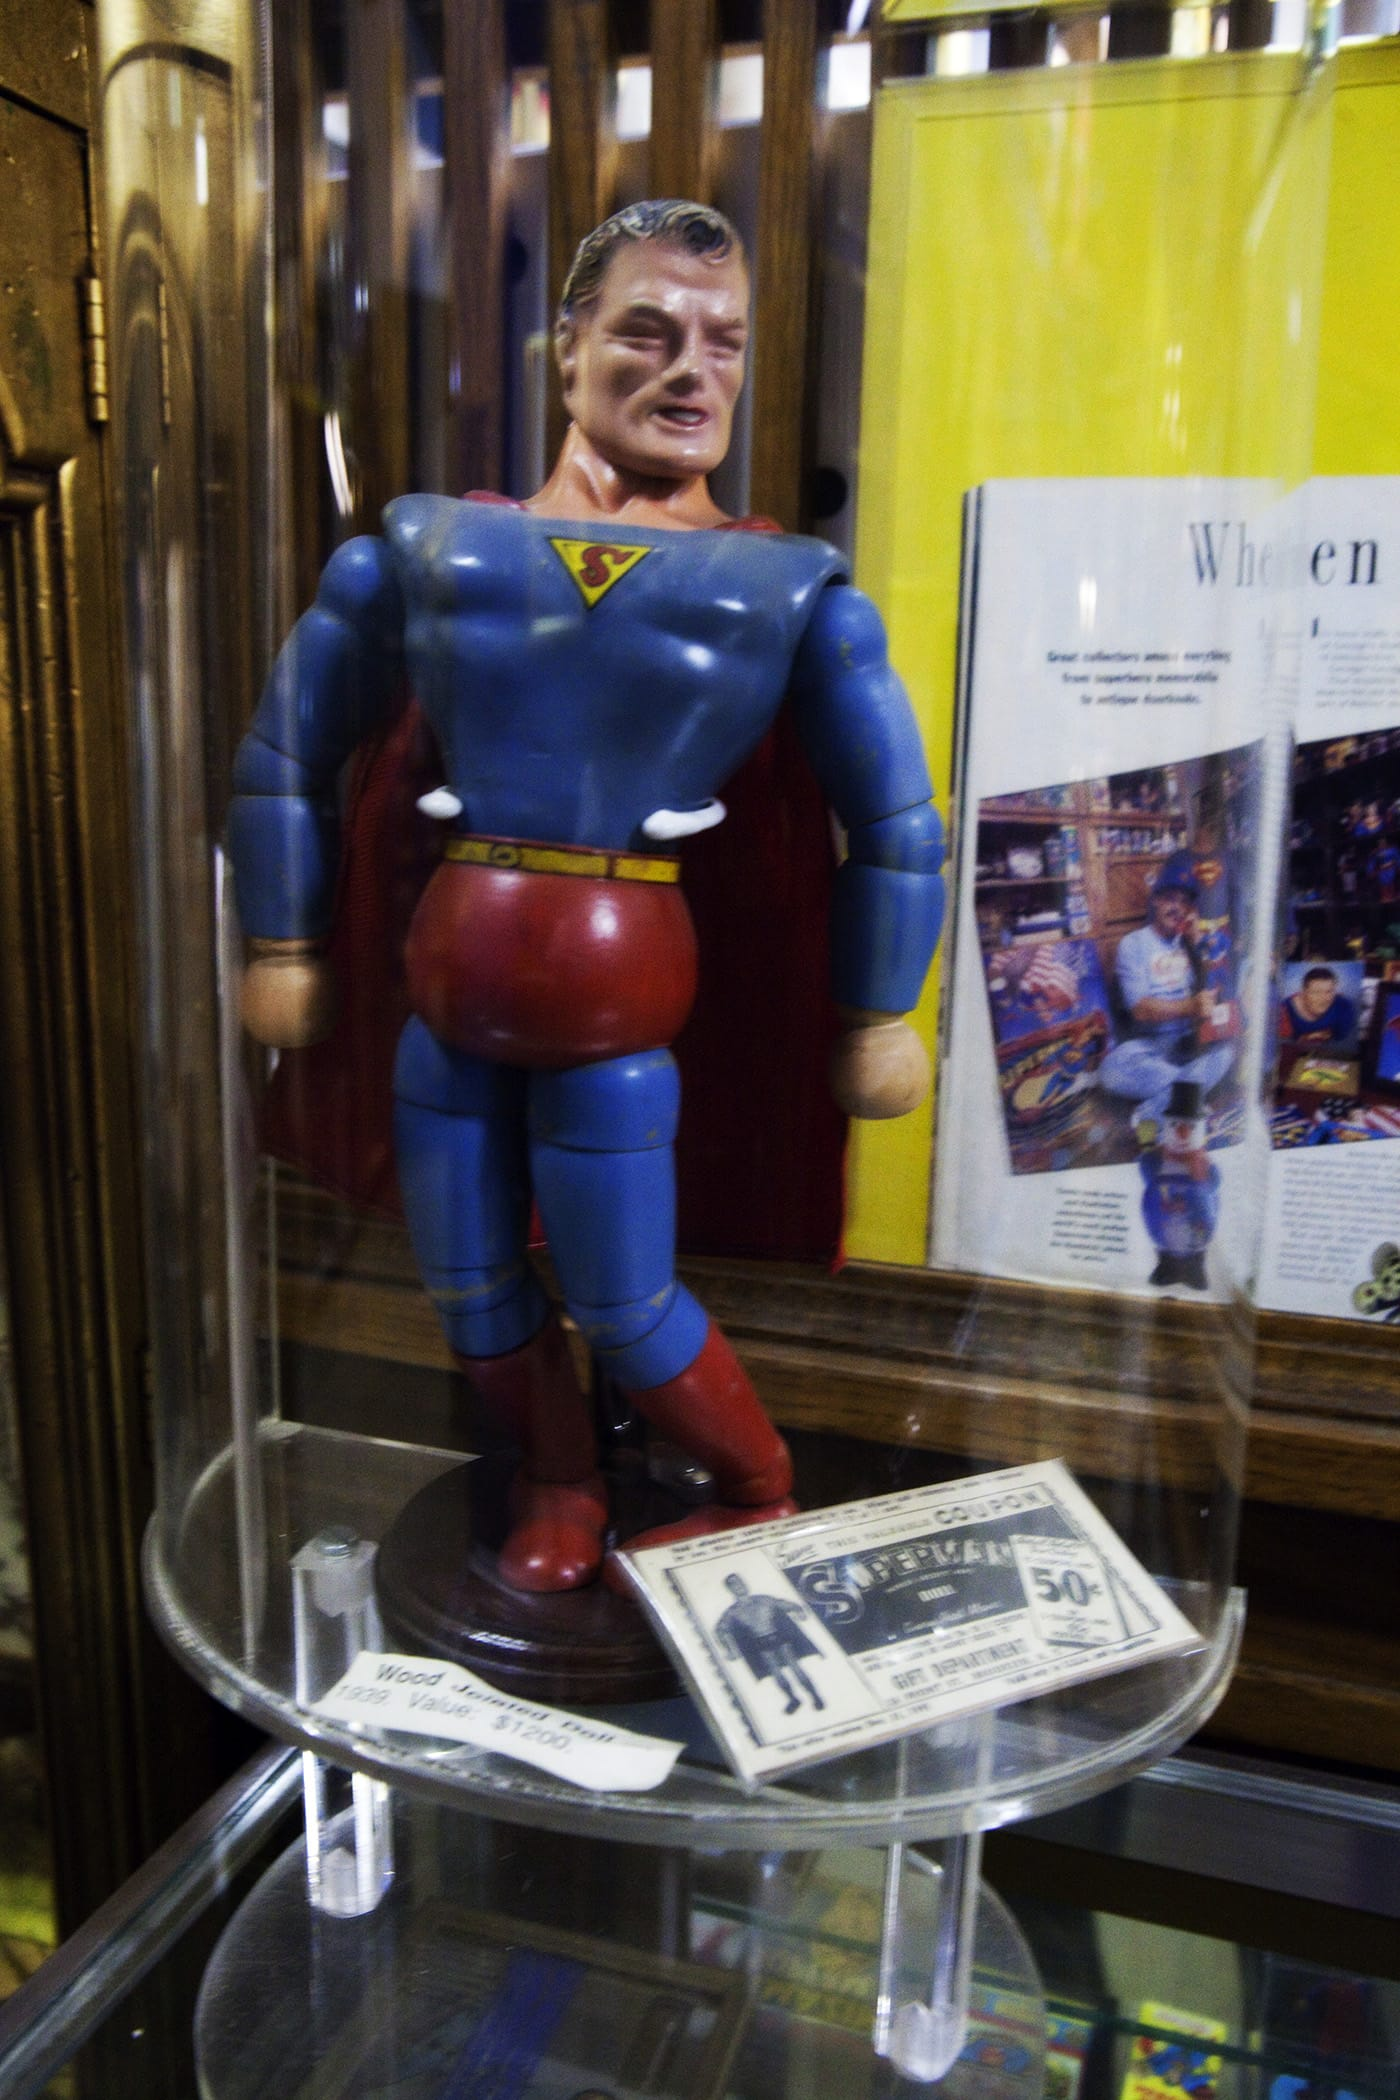 Wooden Superman doll at the Super Museum in Metropolis, Illinois.